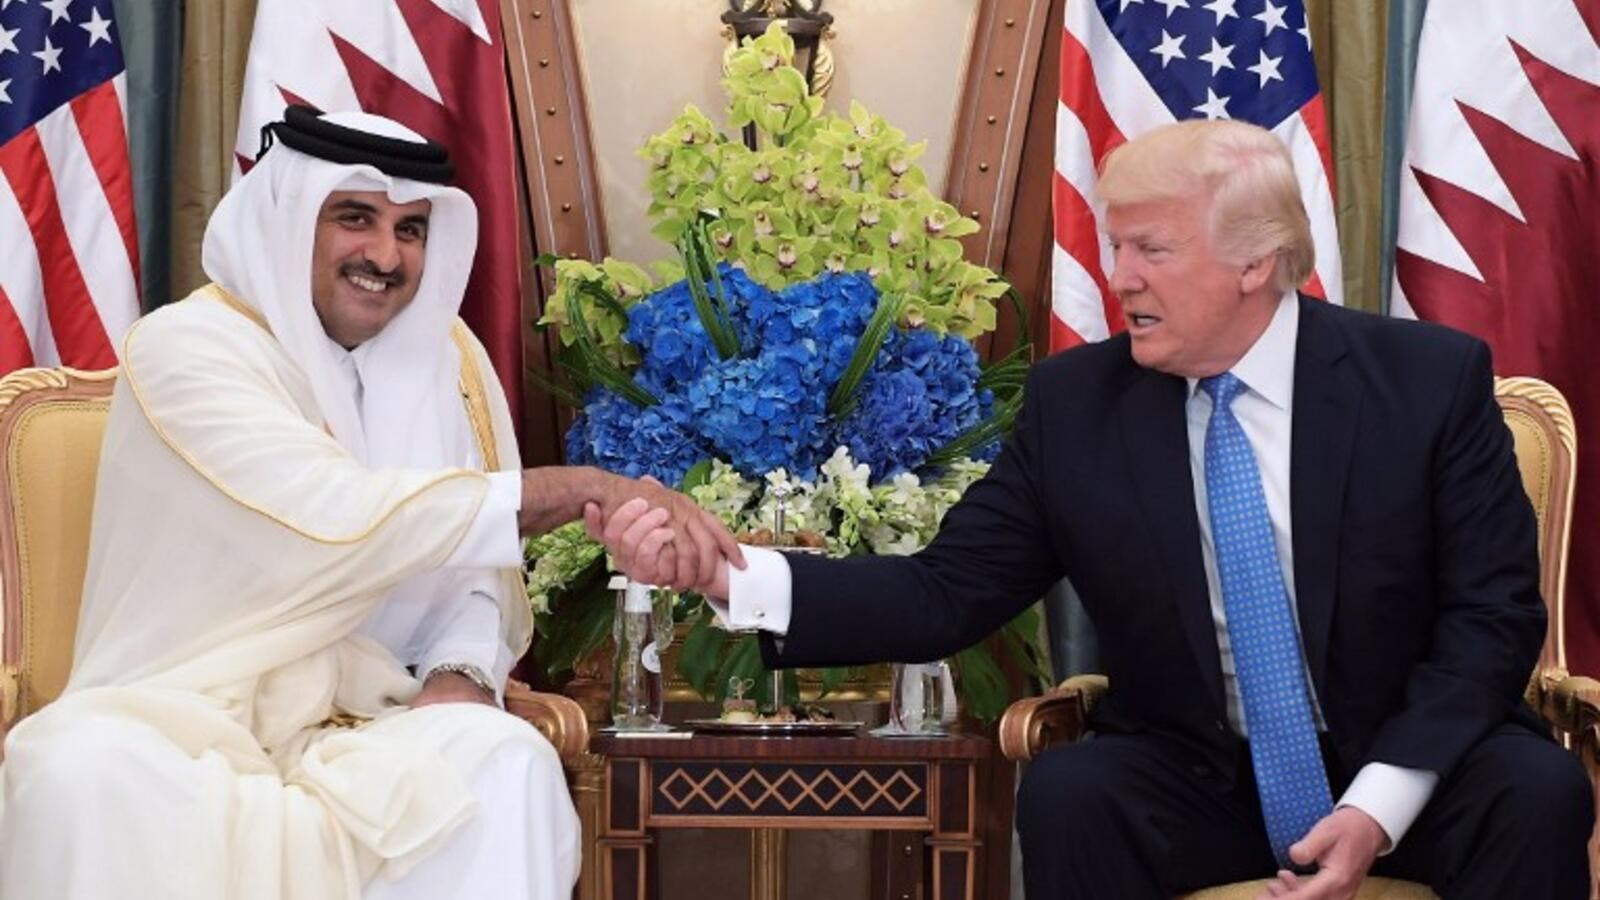 This file photo taken on May 21, 2017 shows US President Donald Trump (R) shaking hands with Qatar's Emir Sheikh Tamim Bin Hamad Al-Thani, during a bilateral meeting at a hotel in the Saudi capital Riyadh.(Mandel Ngan/AFP)